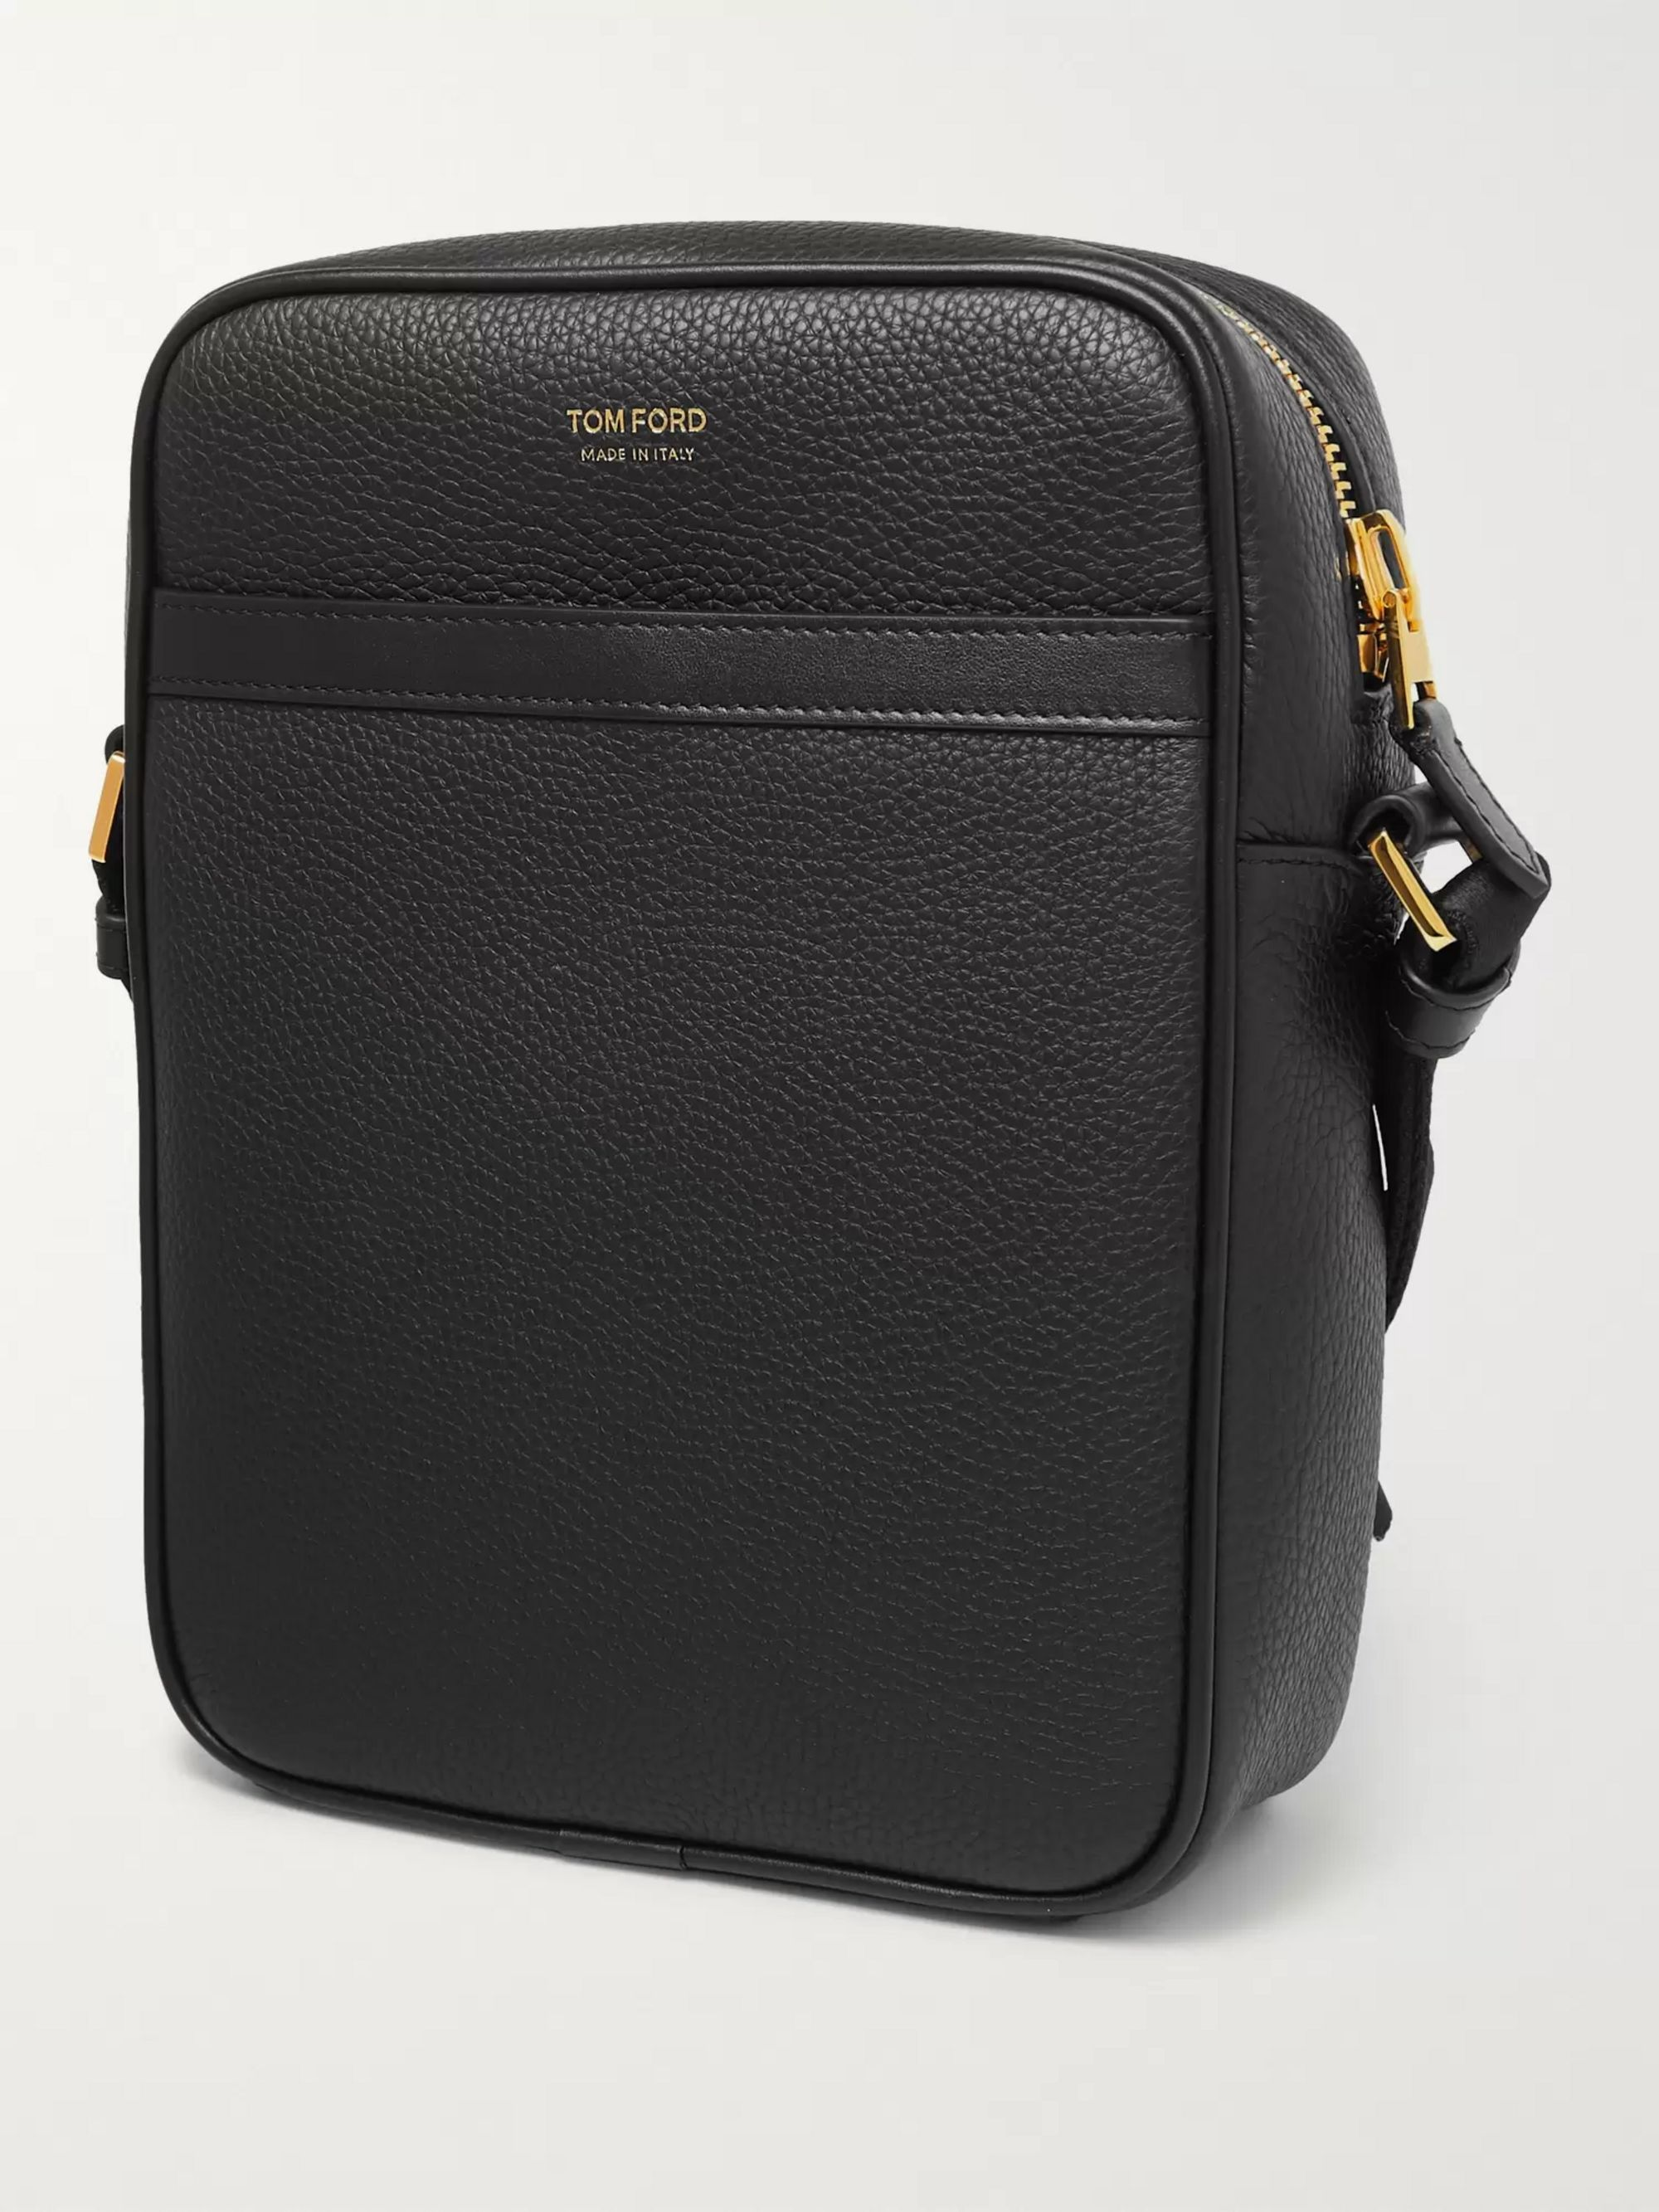 TOM FORD North South Full-Grain Leather Messenger Bag